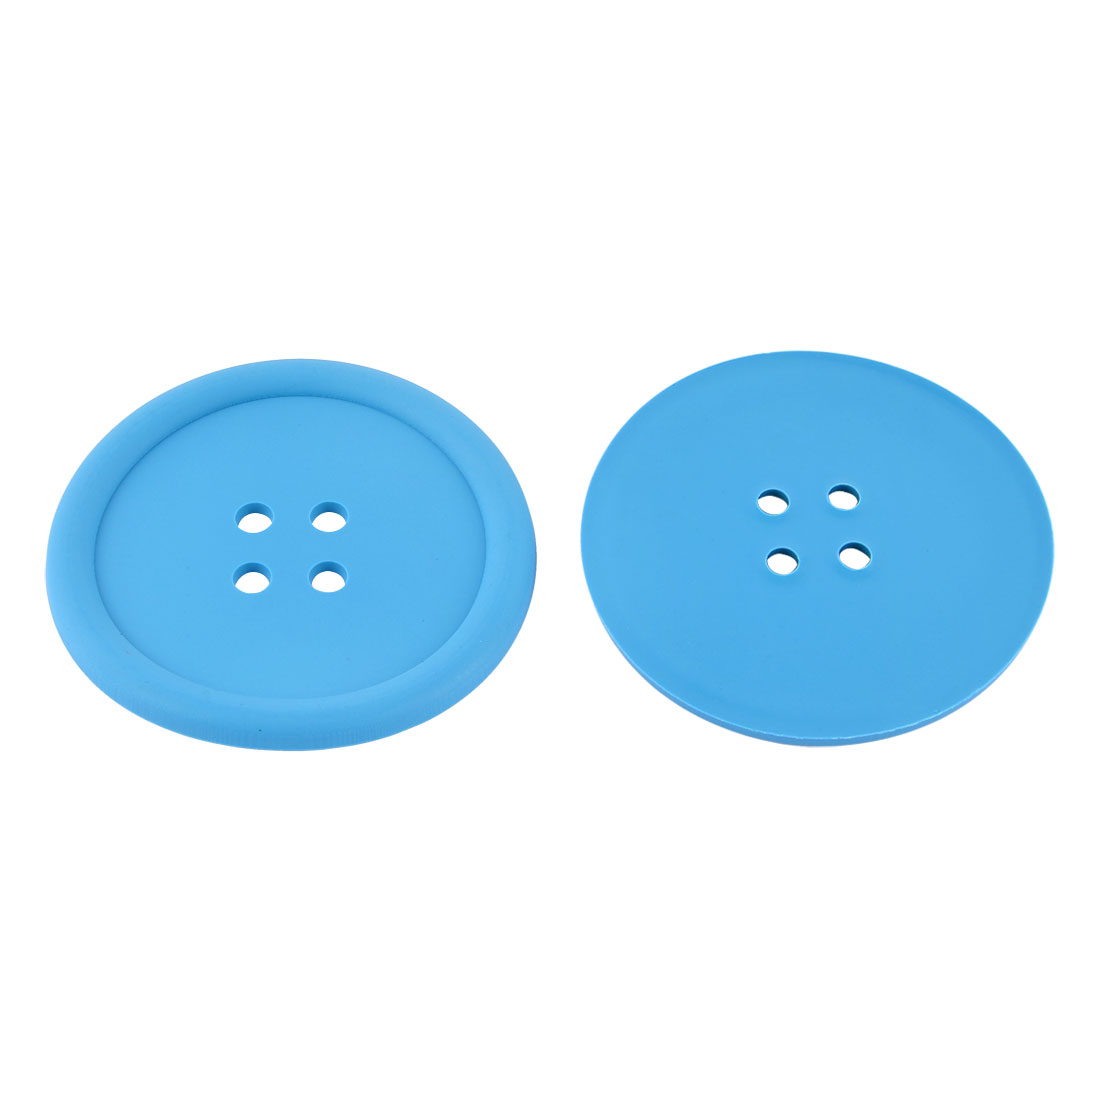 Household Silicone Coat Button Shaped Teapot Bottle Cup Coasters Mat Blue 2 Pcs